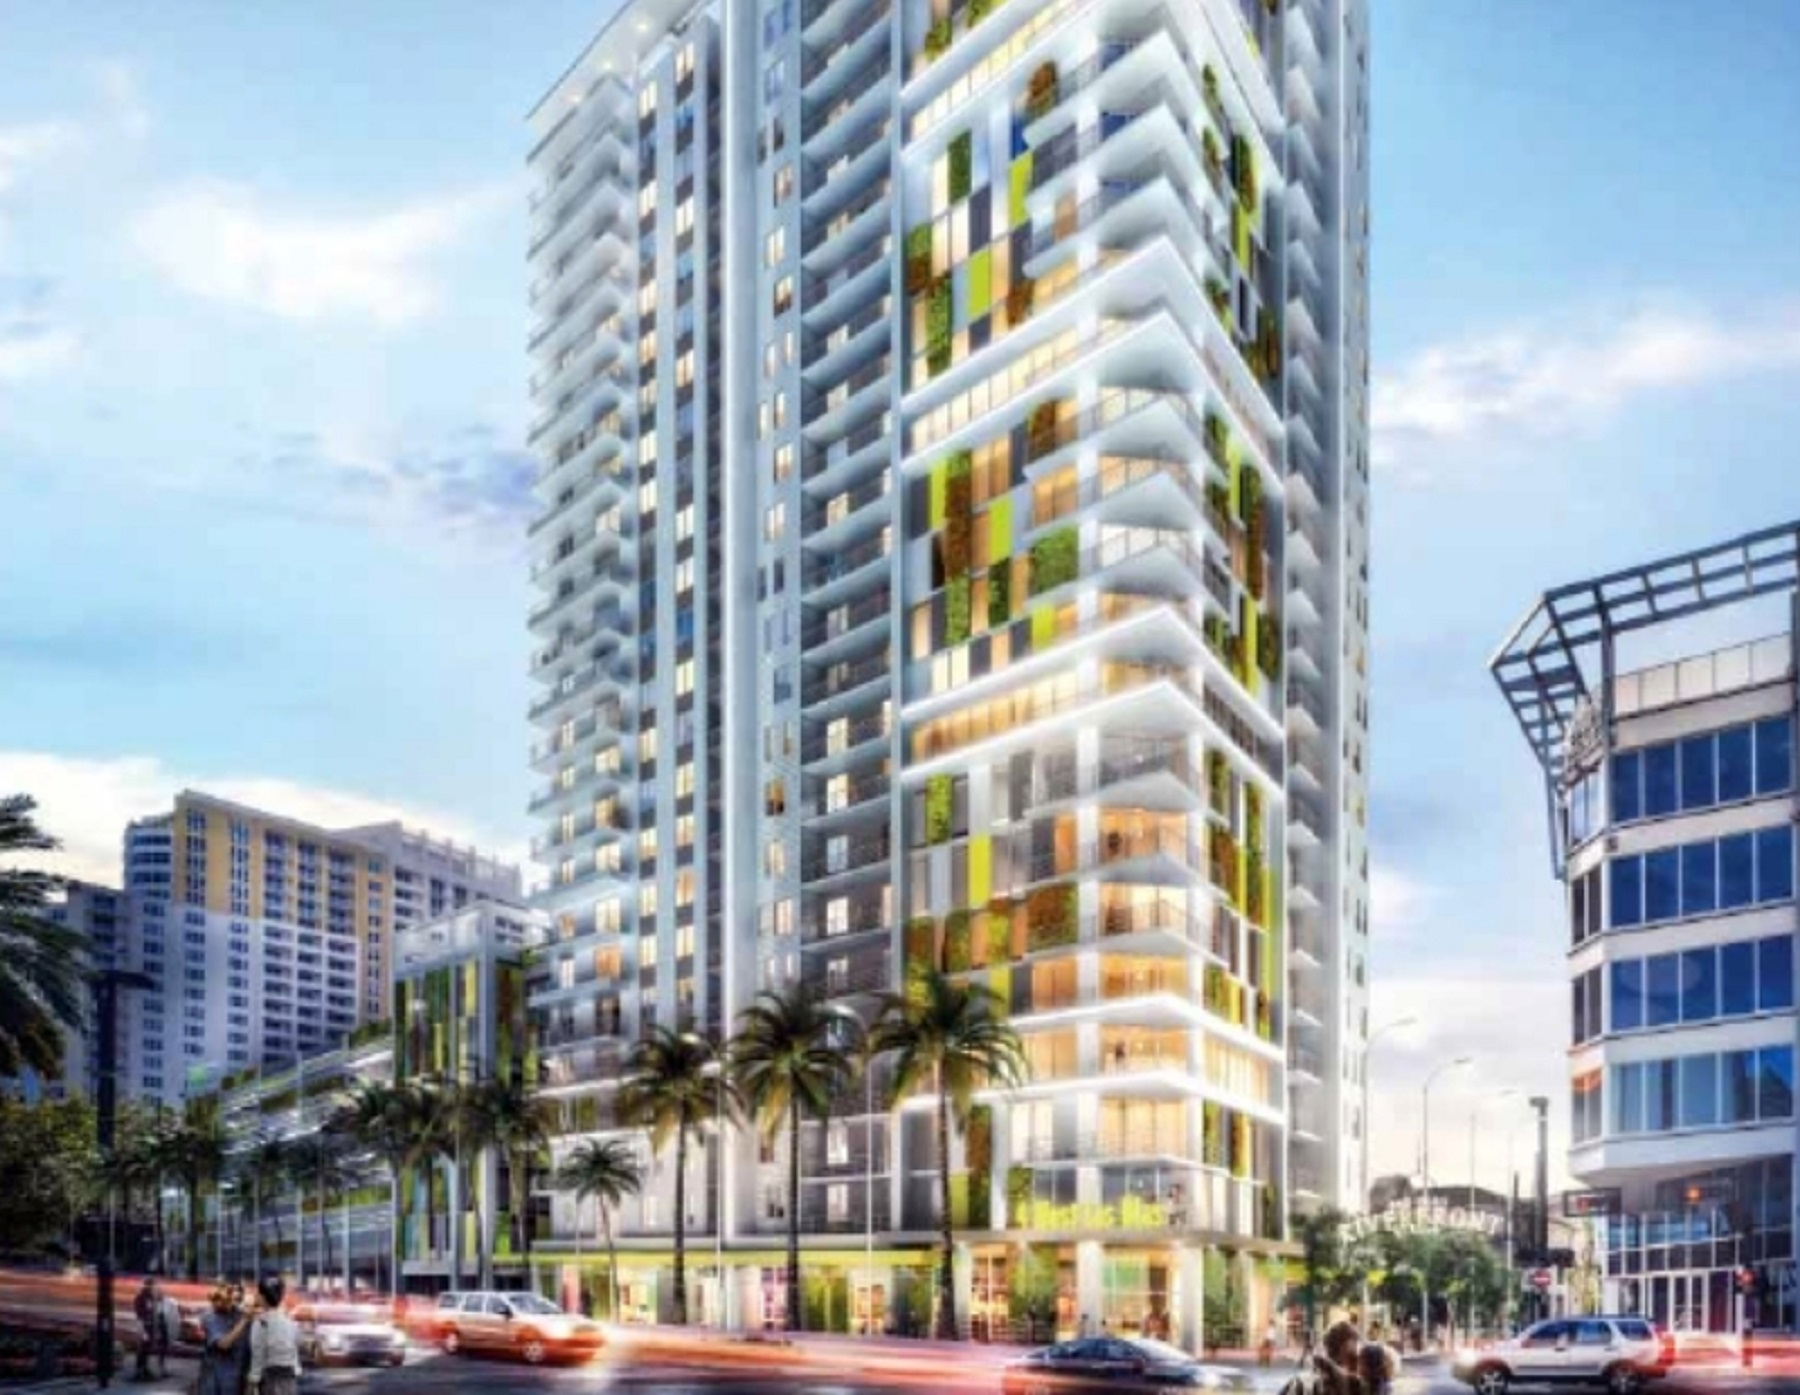 Electra Capital Provides $92M Loan for Florida Luxury Community